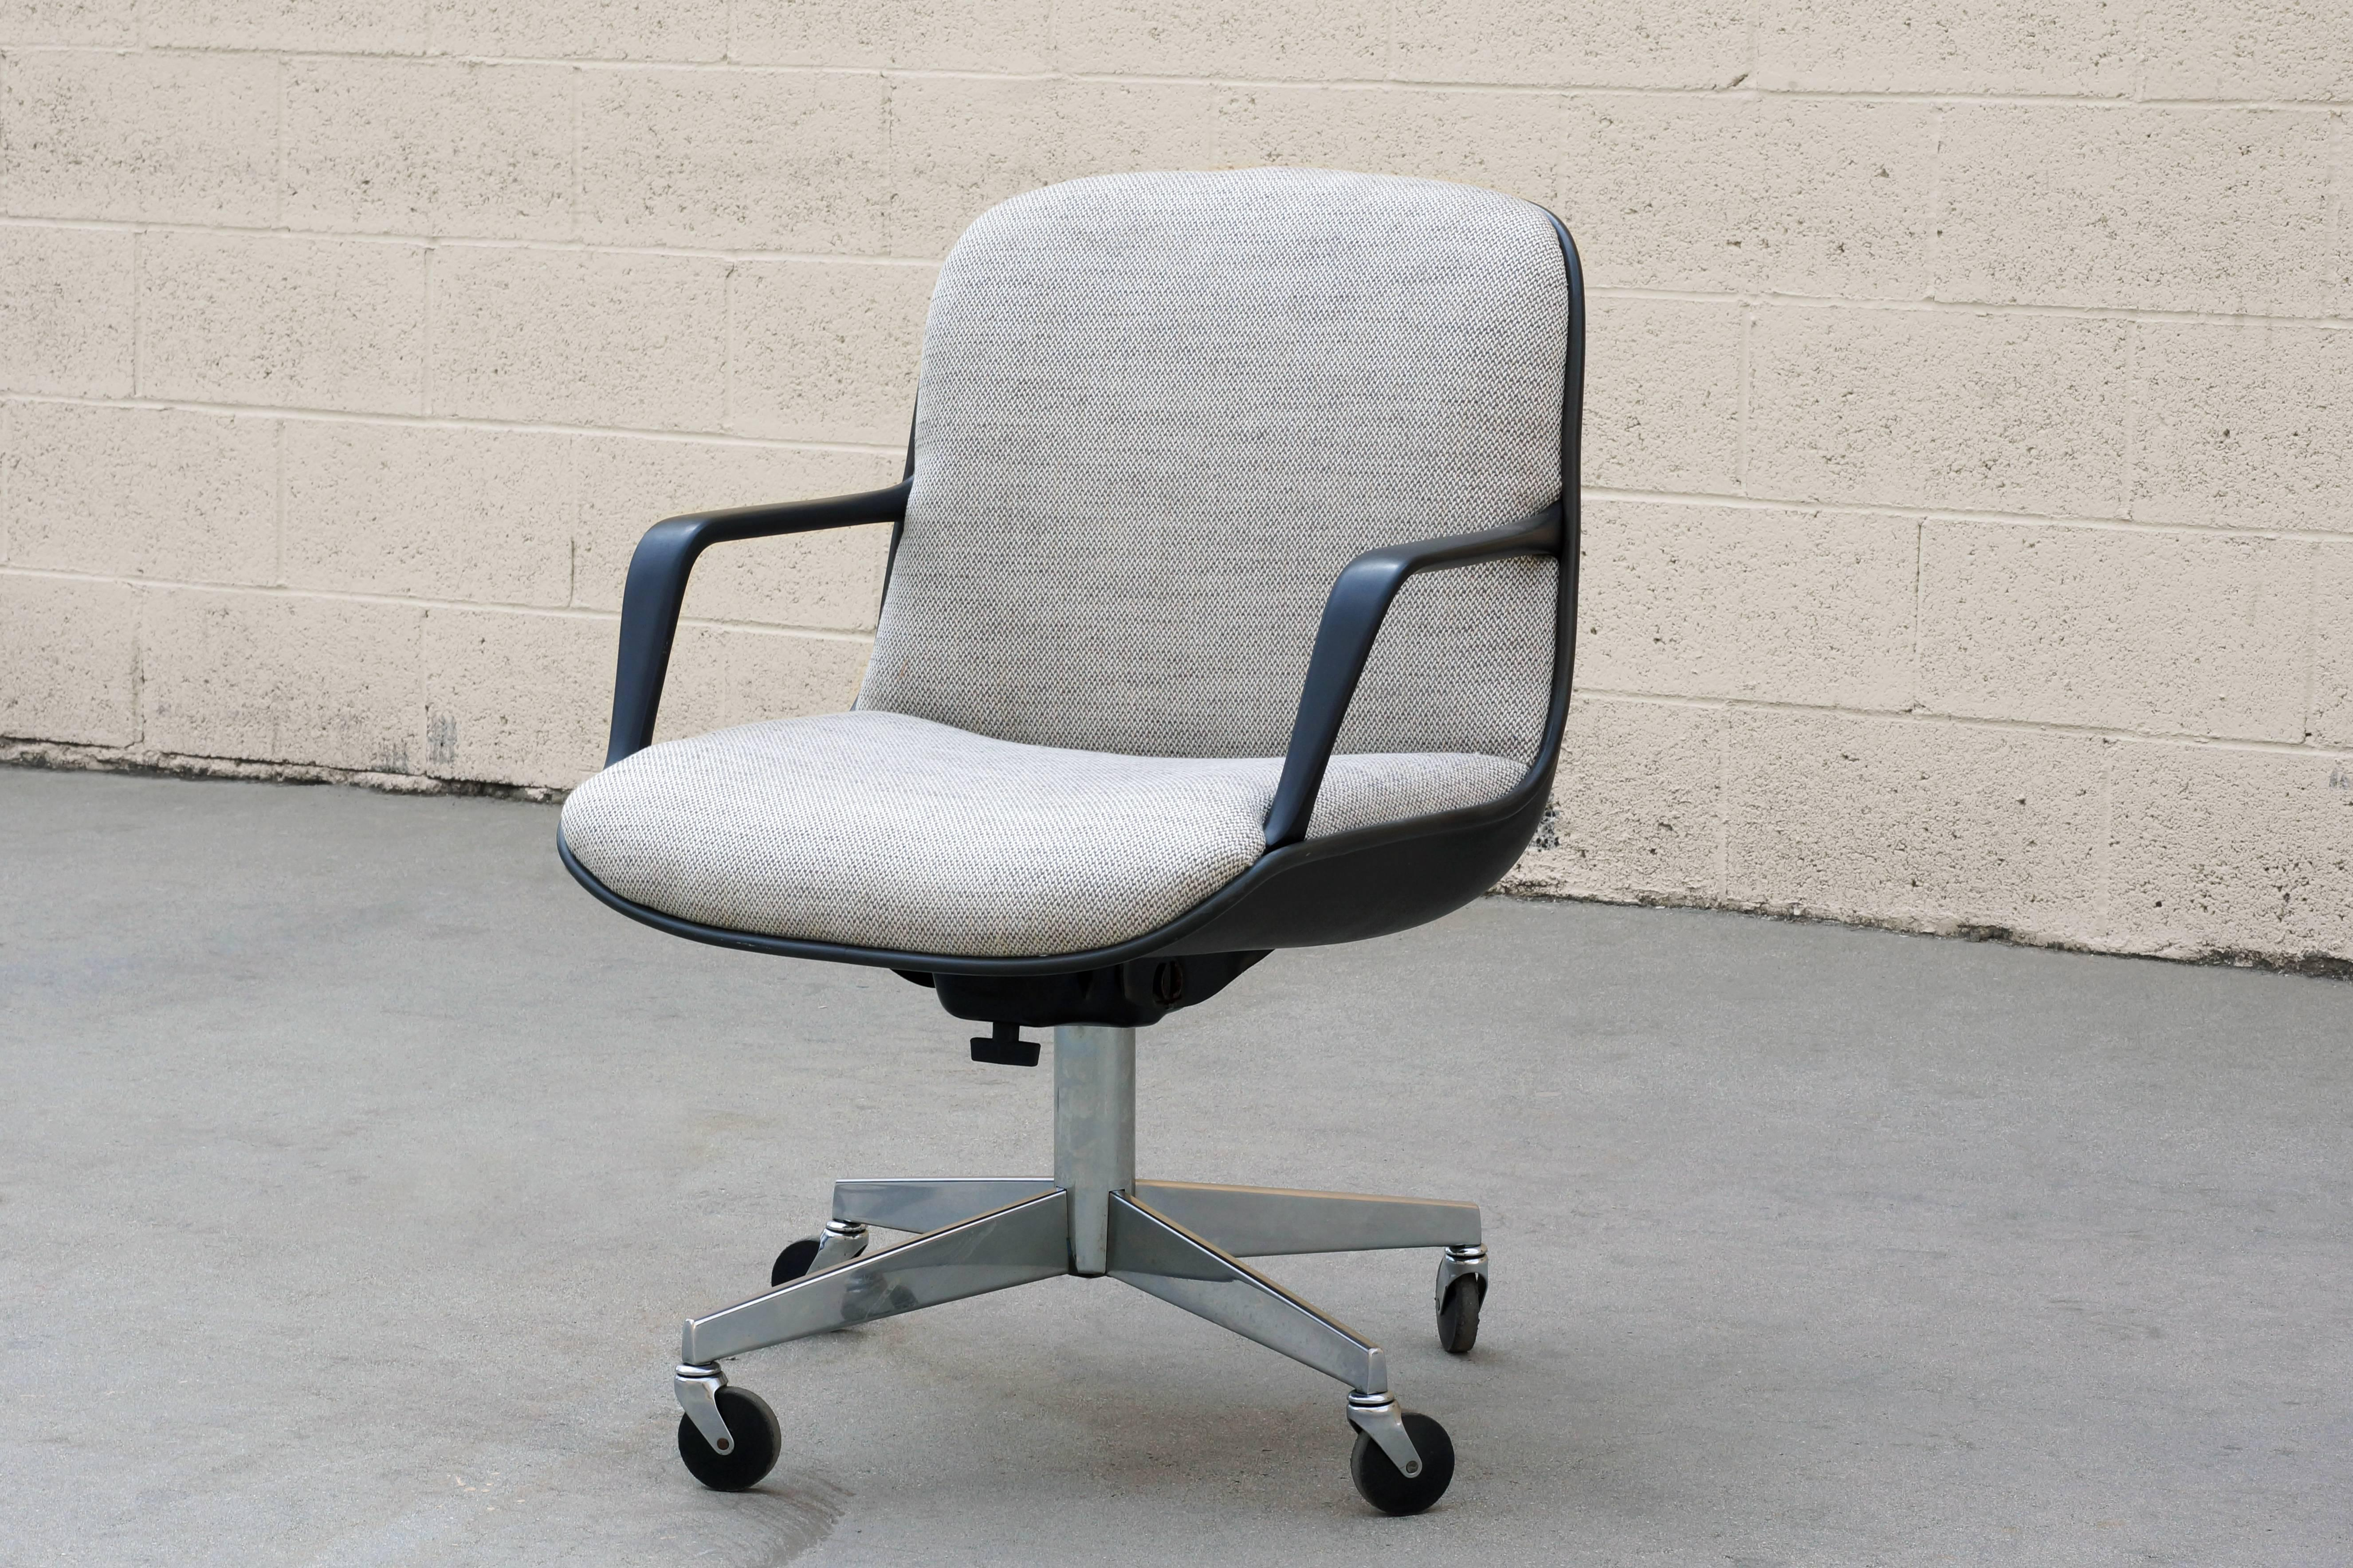 Office chair vintage Harter Vintage 1984 Steelcase Office Chair Model 451 This Midcentury Inspired Chair Features An Iconic 1stdibs Vintage Steelcase 451 Office Chair Refinished At 1stdibs